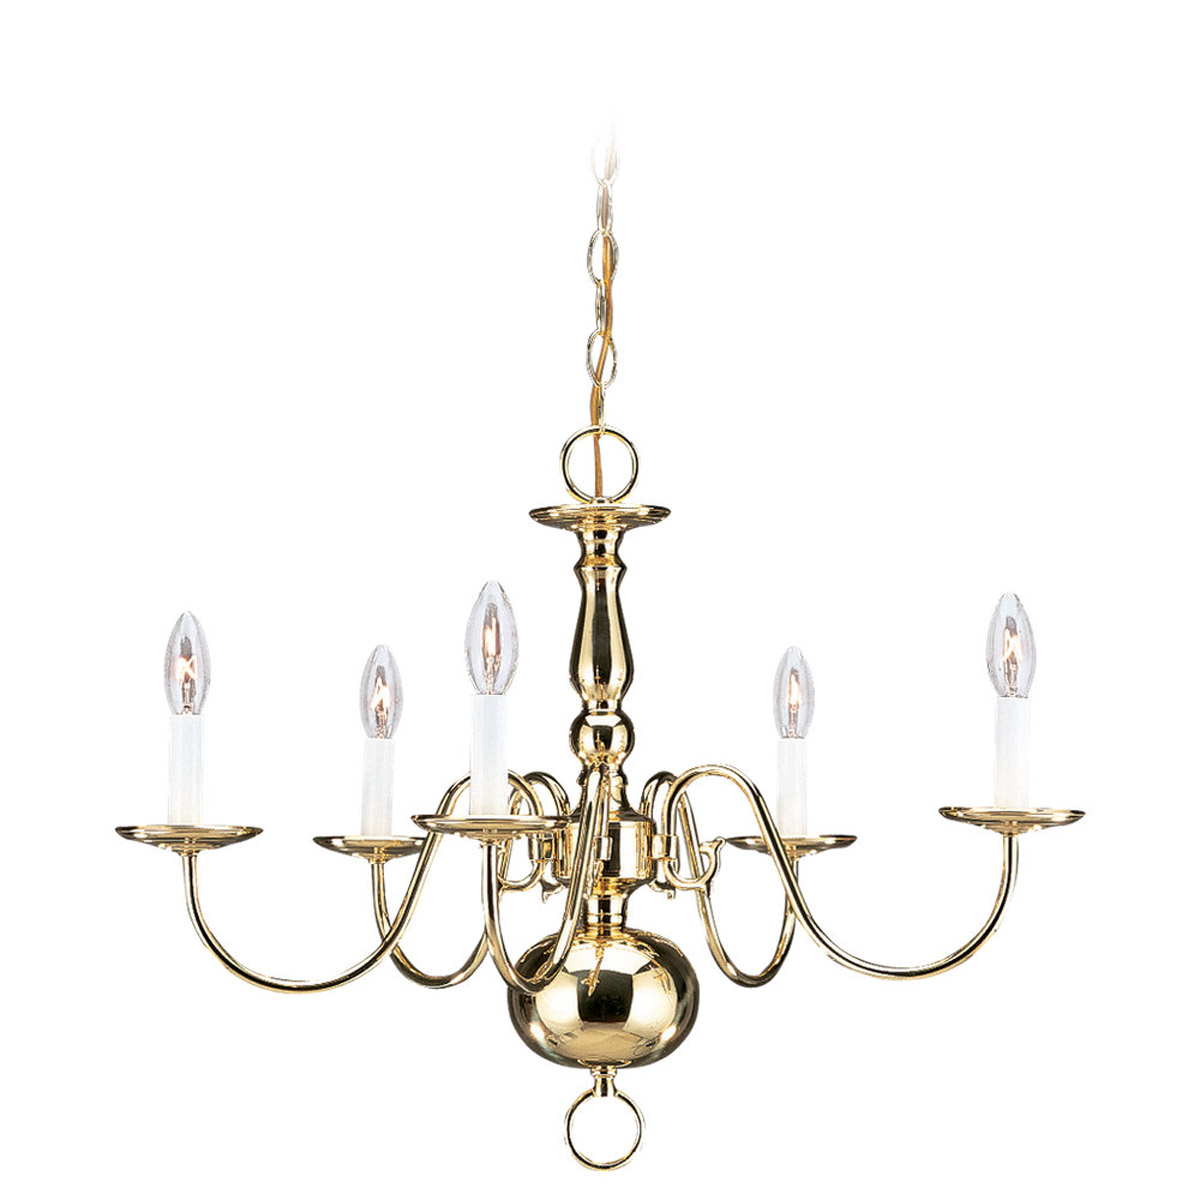 Sea Gull 3410-02 Traditional 5 Light 24 inch Polished Brass Chandelier Ceiling Light photo